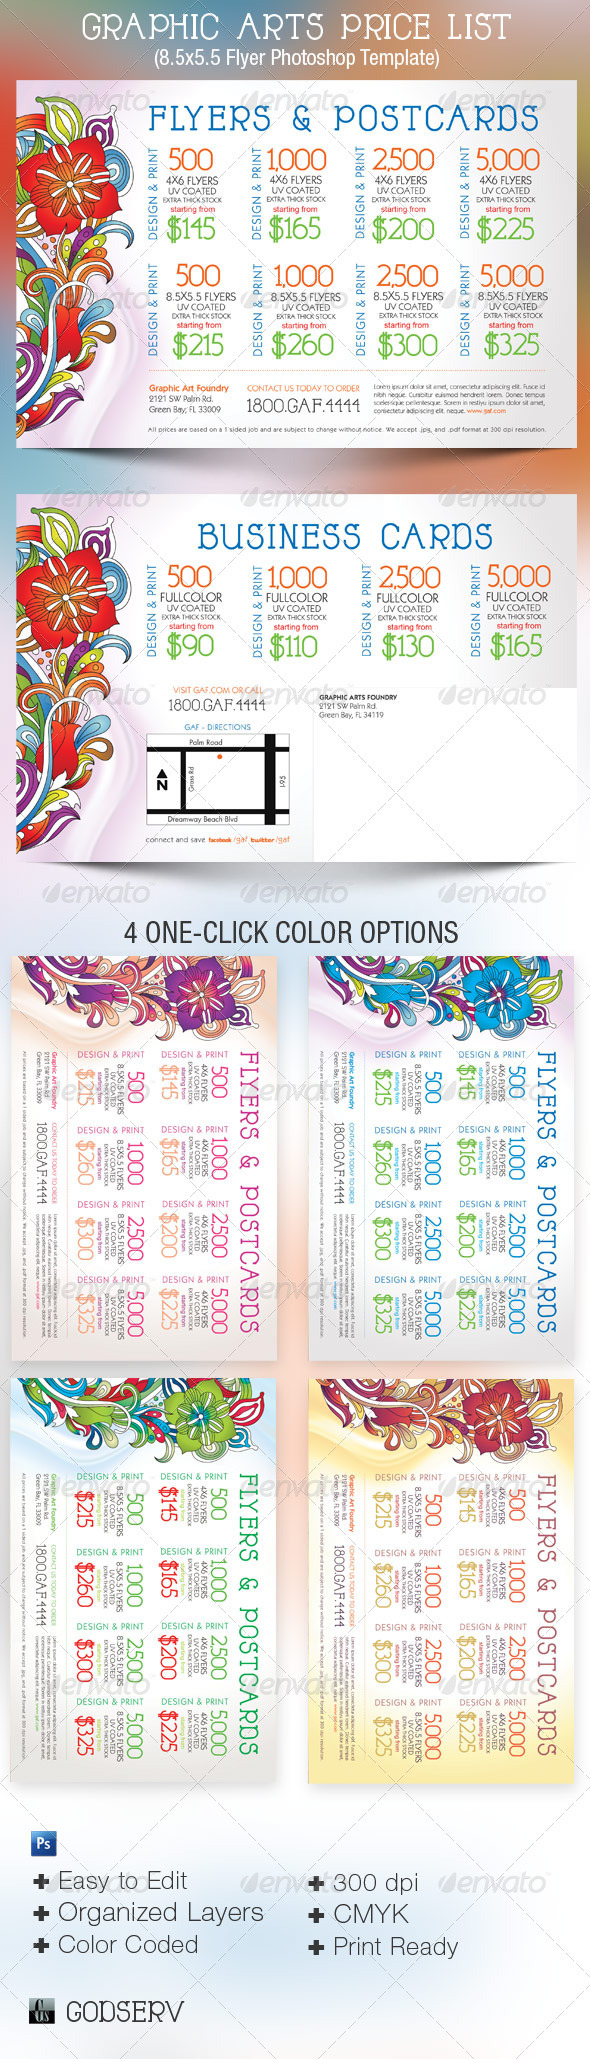 GraphicRiver Graphic Arts Price Flyer and Postcard Template 2612182